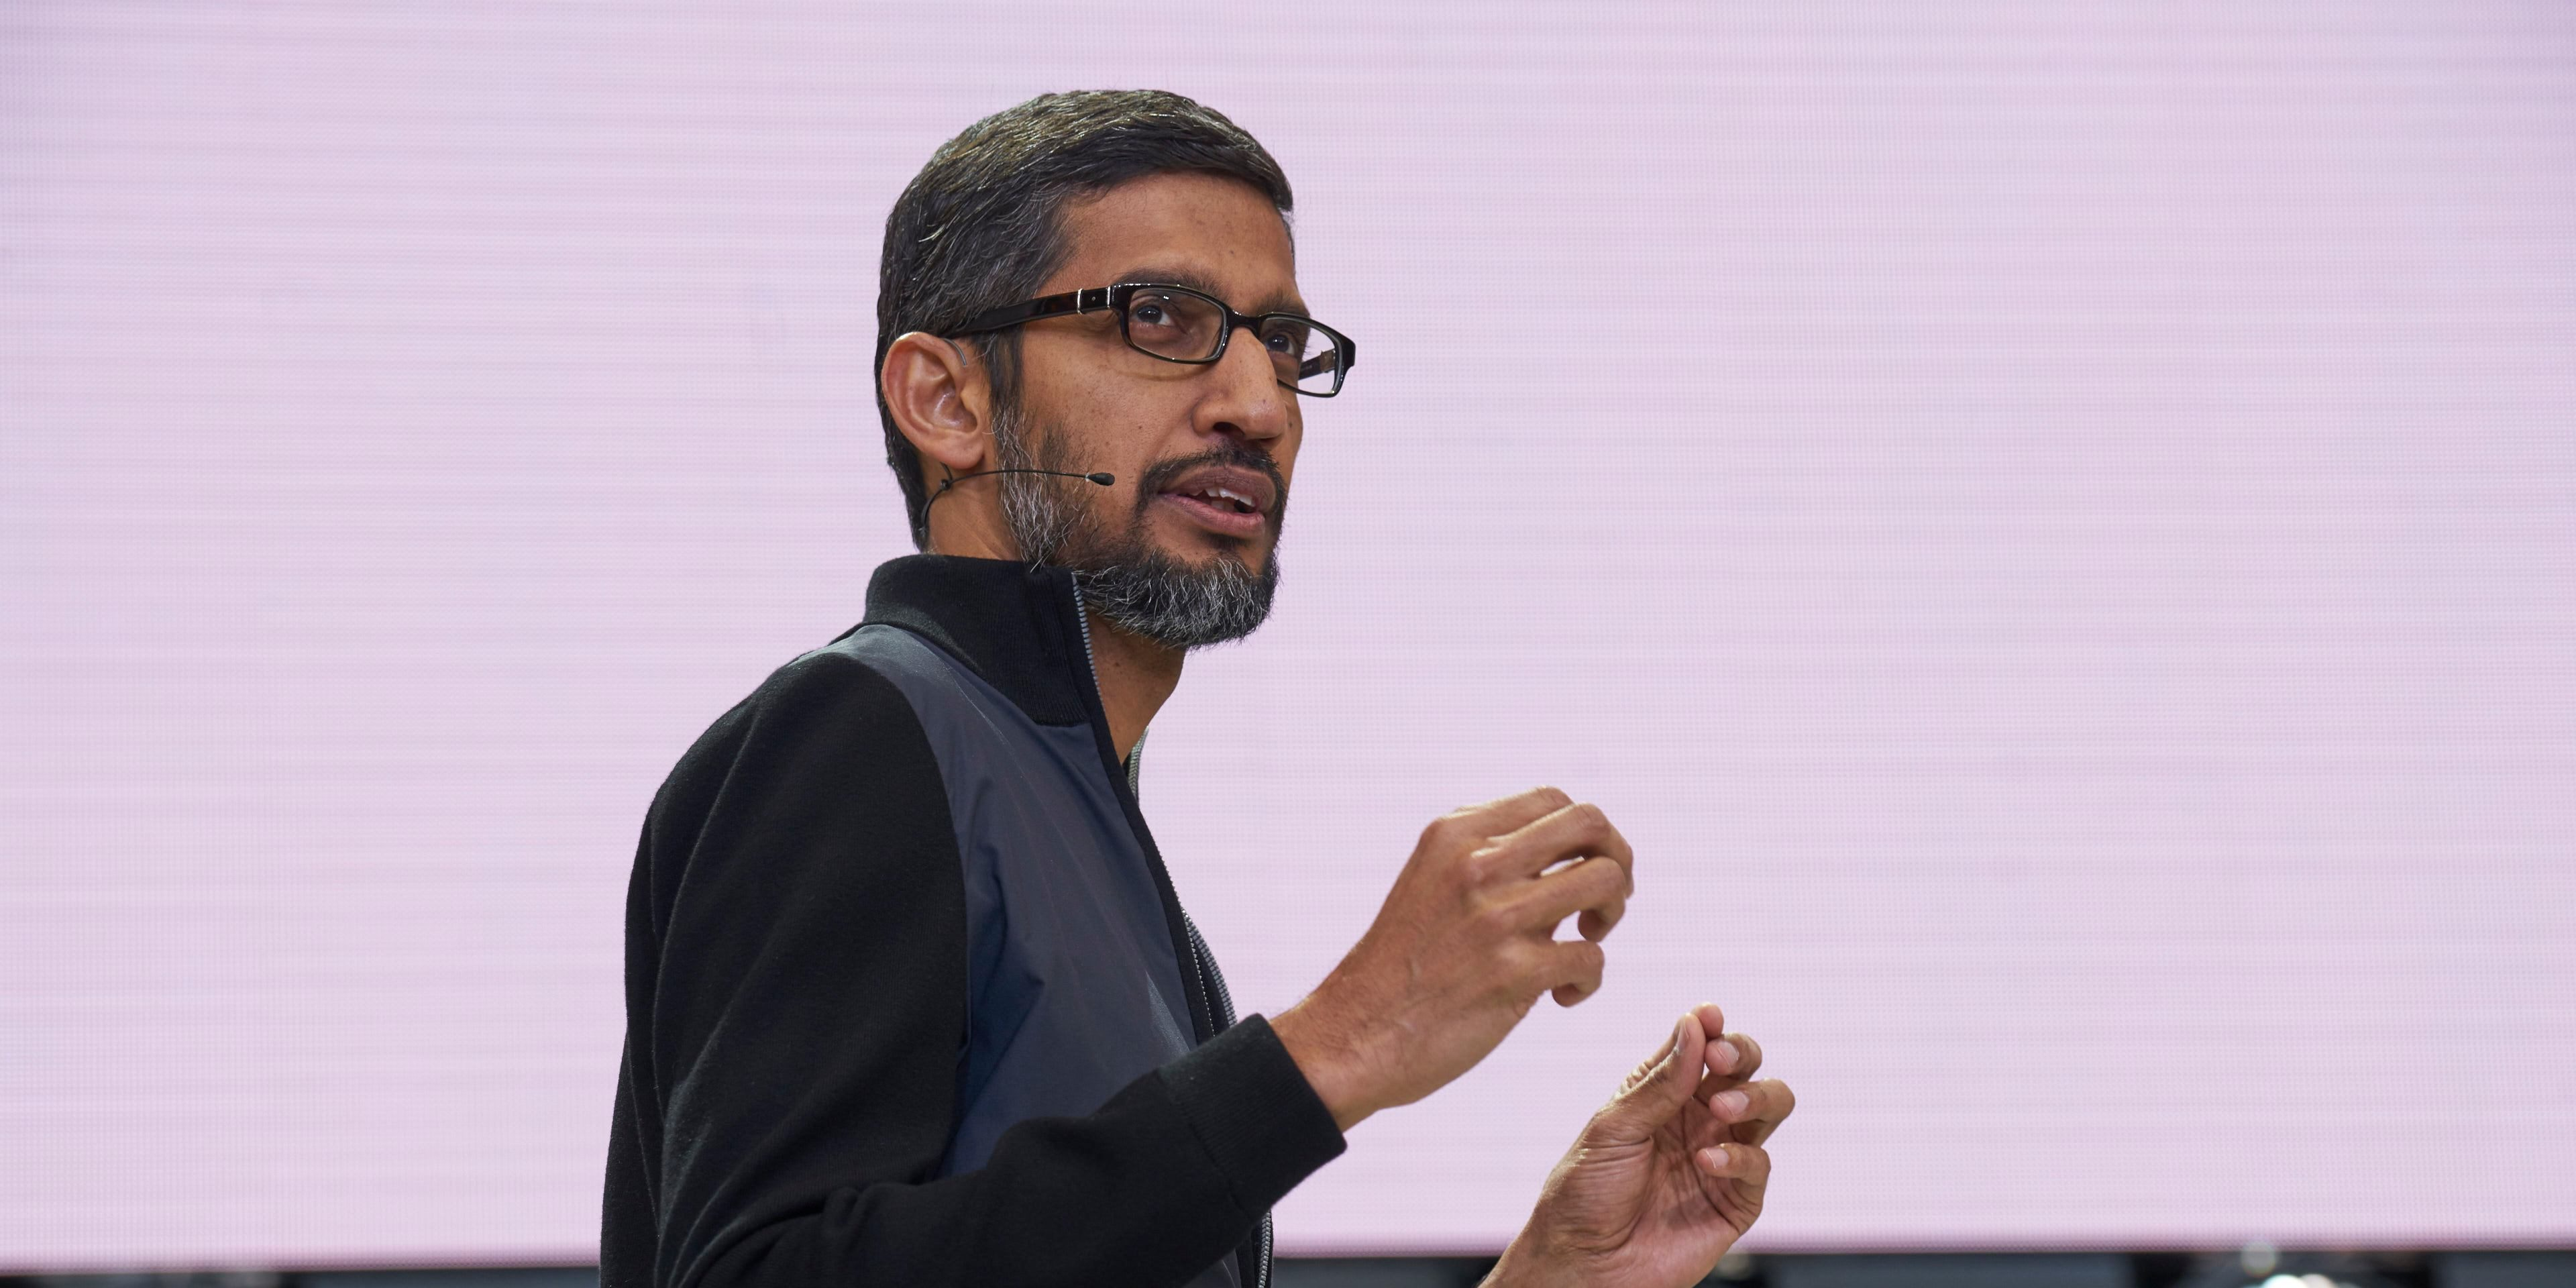 Numbers from Pichai's testimony: 100 employees in Dragonfly, 160 million used Privacy Checkup